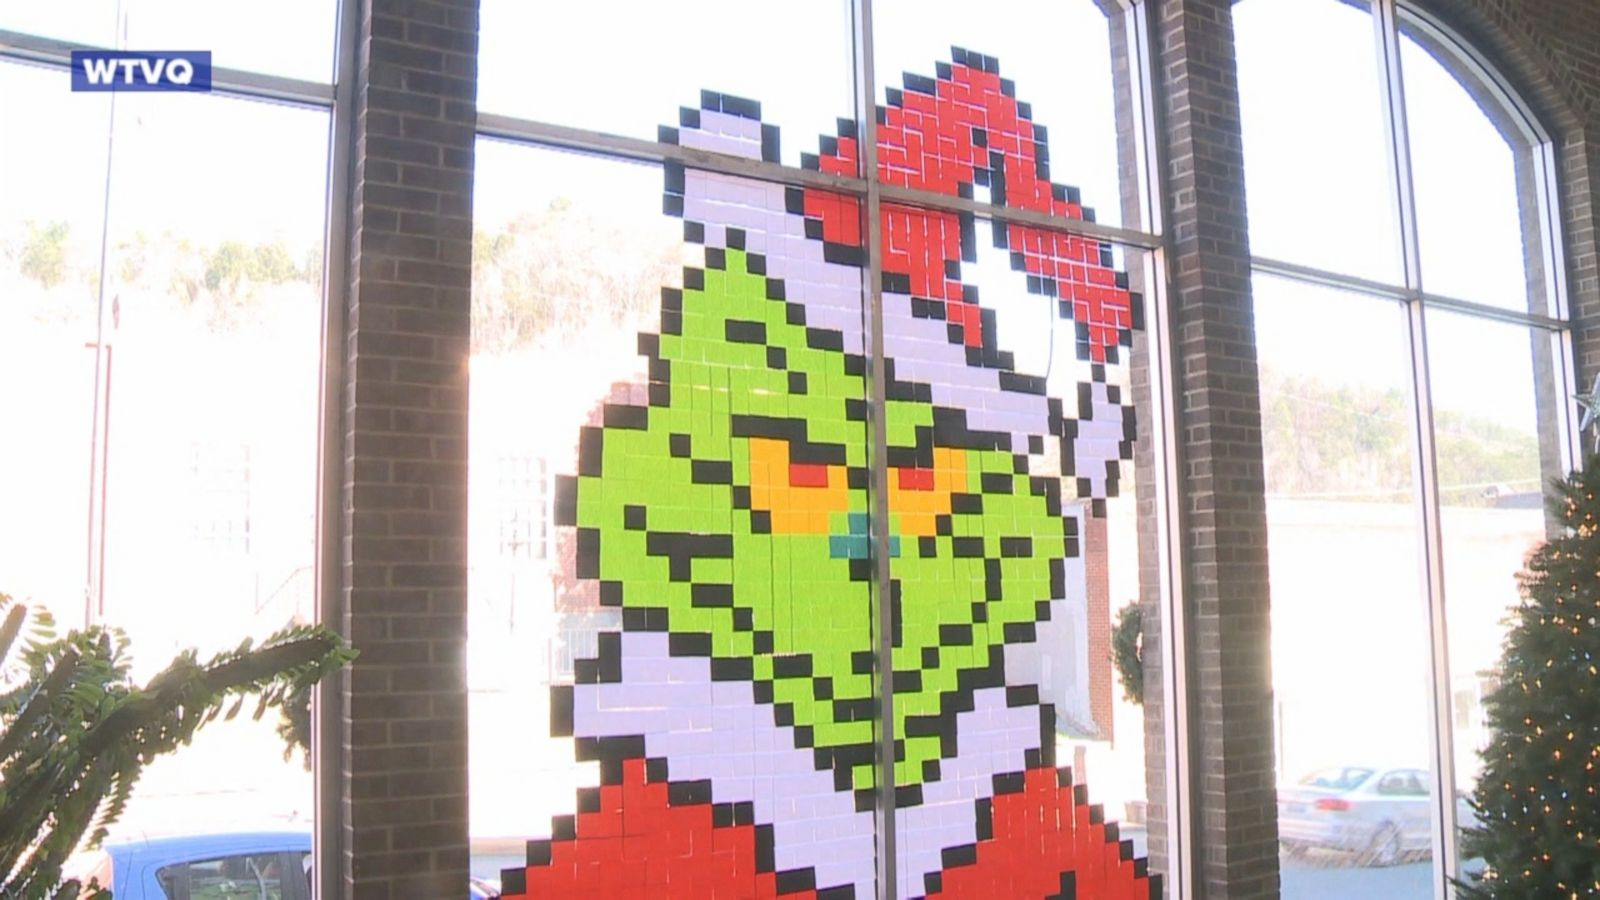 A teacher in Kentucky hopes to spread some joy this holiday season using Post-It Notes.